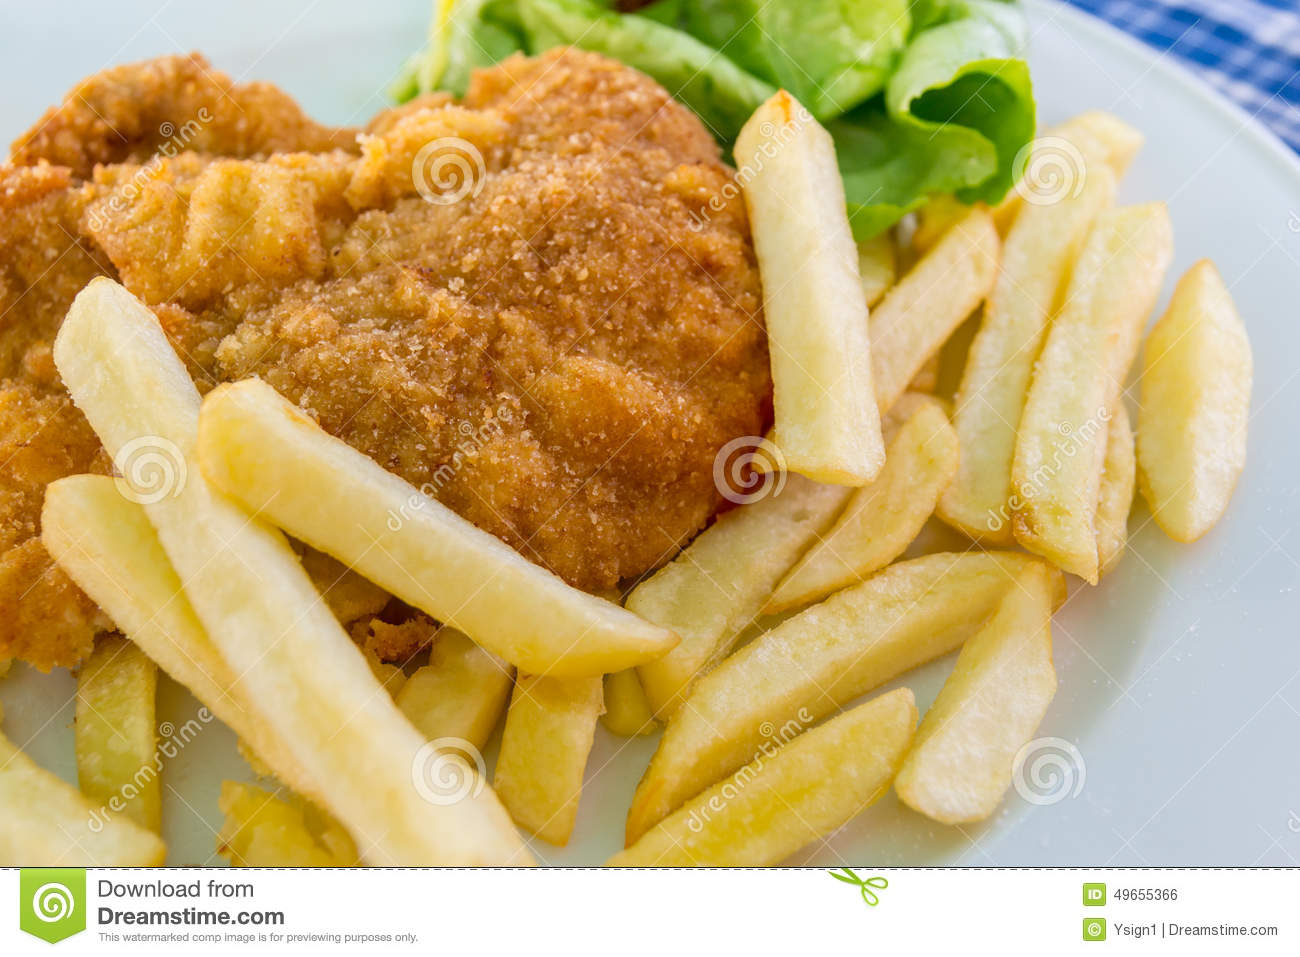 1 408 Schnitzel Chips Salad Photos Free Royalty Free Stock Photos From Dreamstime